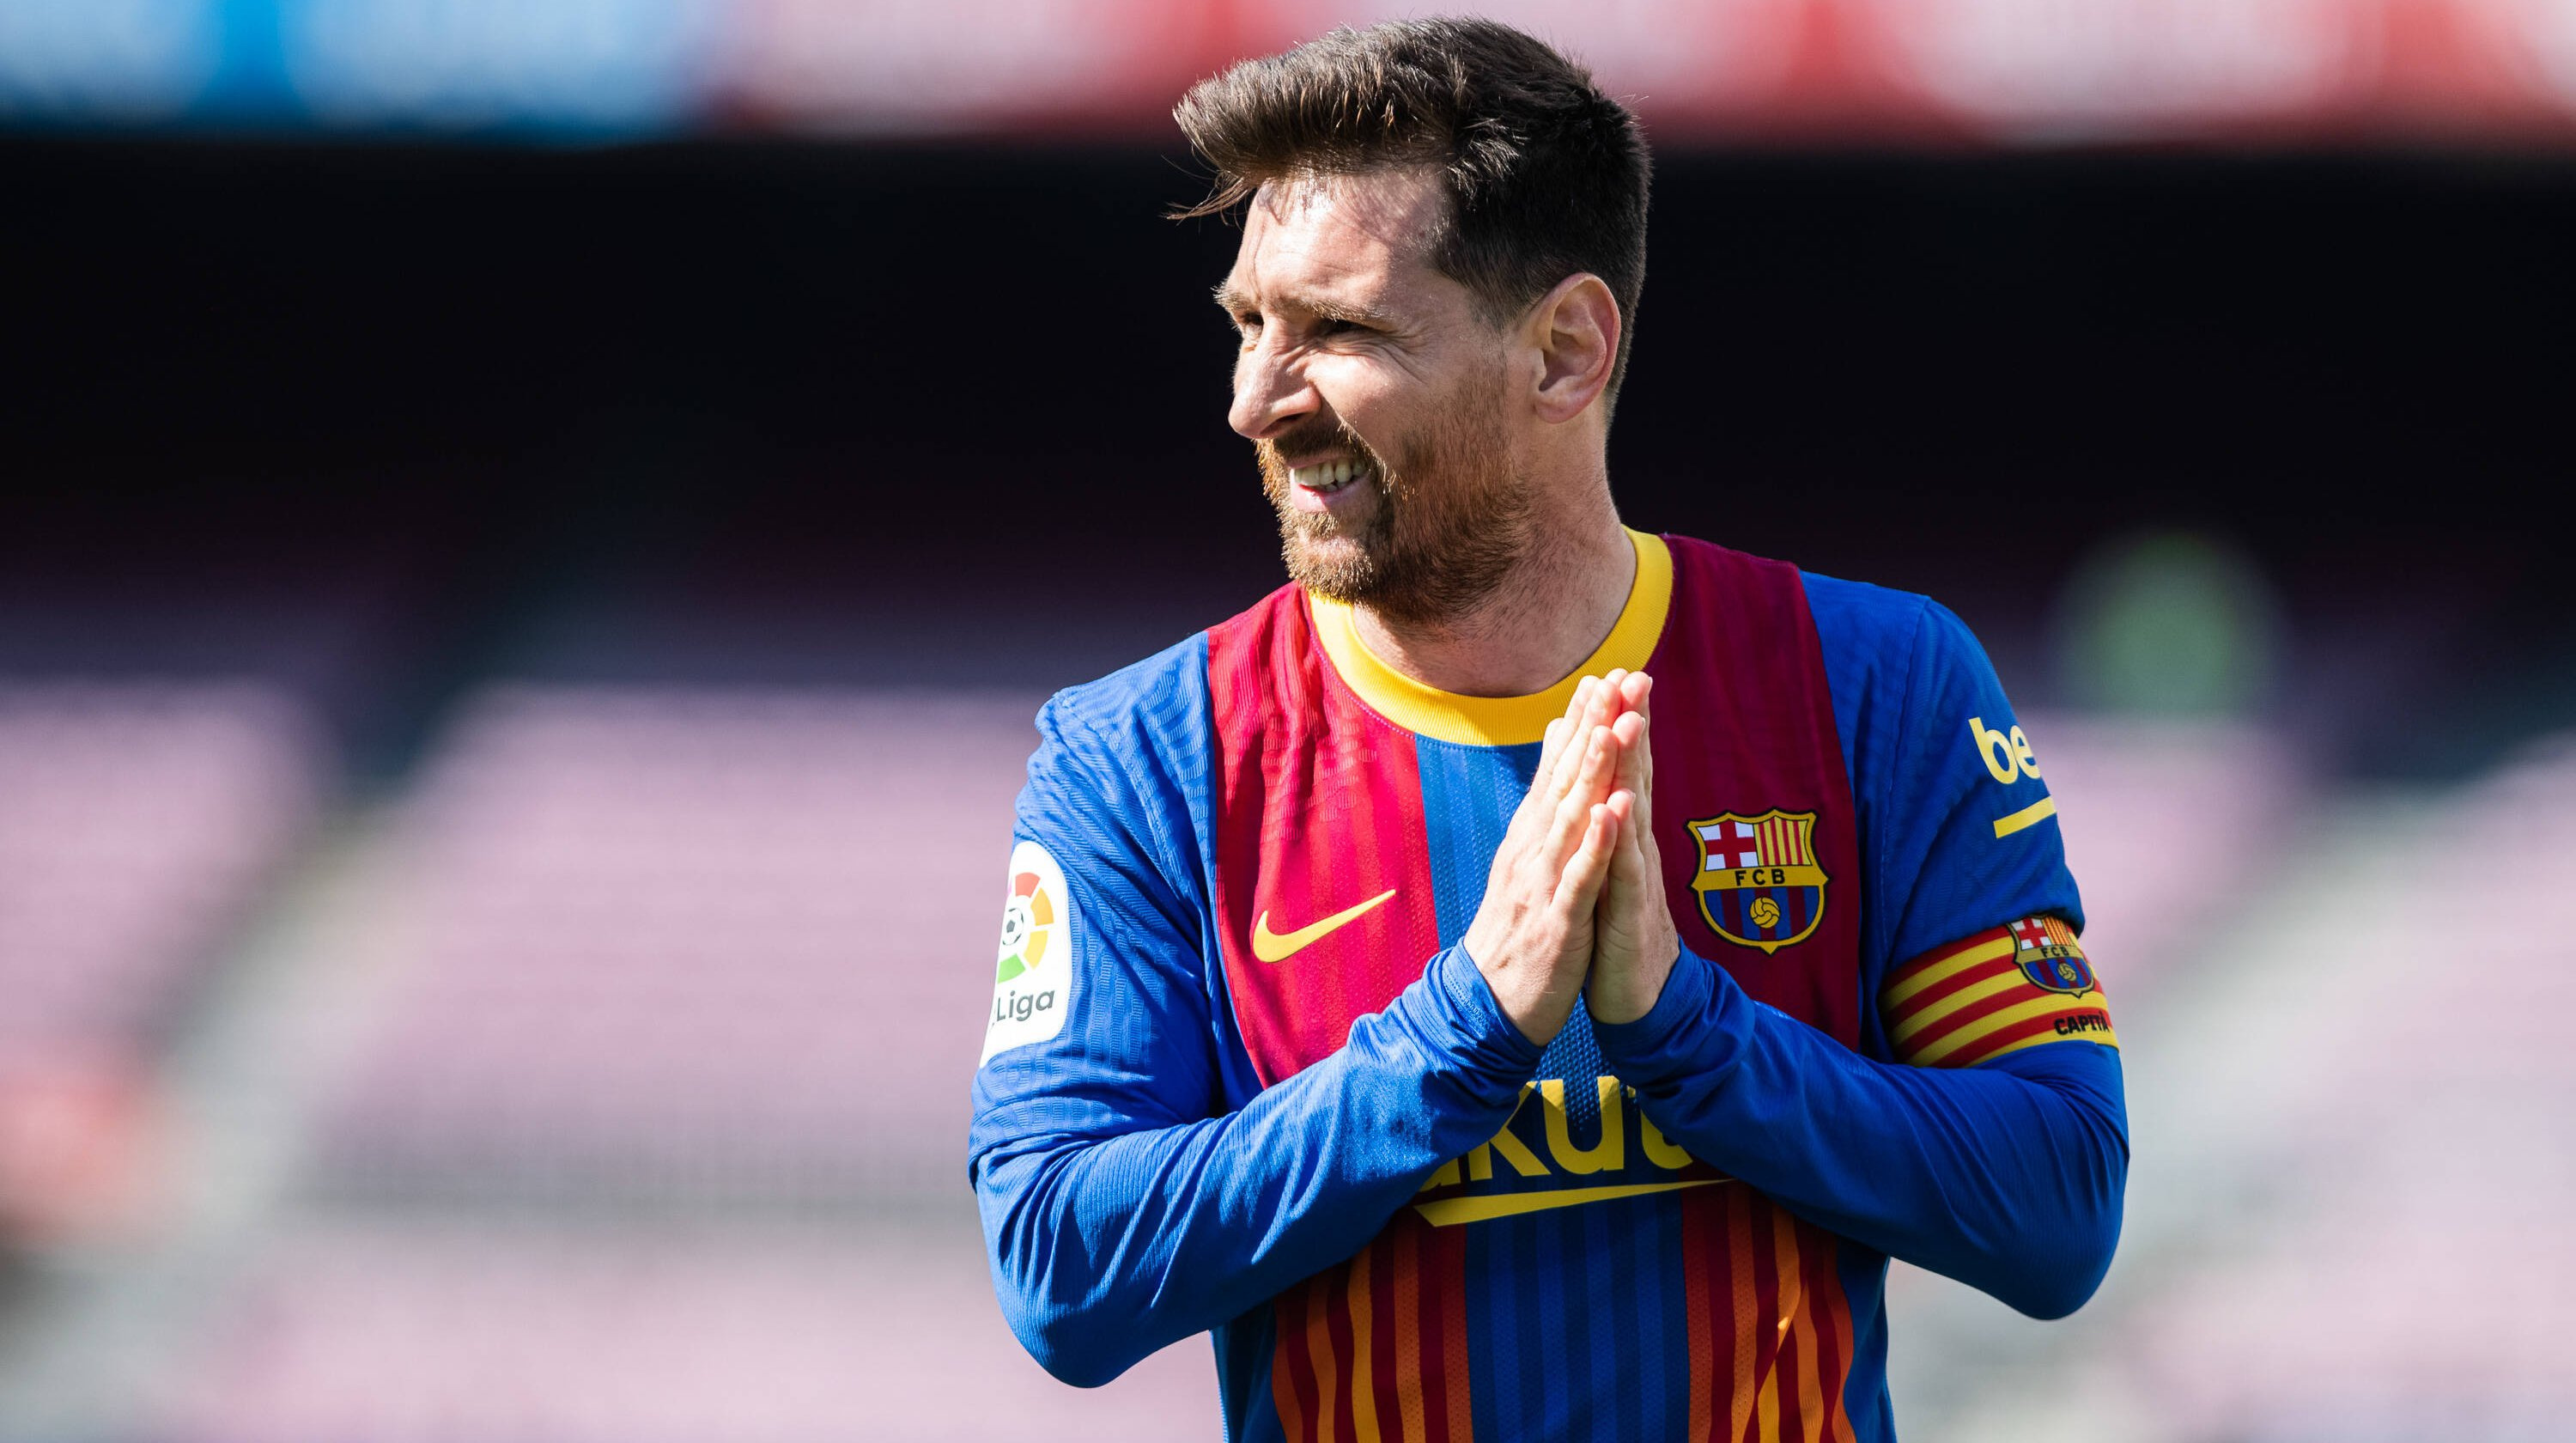 Lionel Messi will leave Barcelona - LaLiga structures make deal impossible  | Transfermarkt